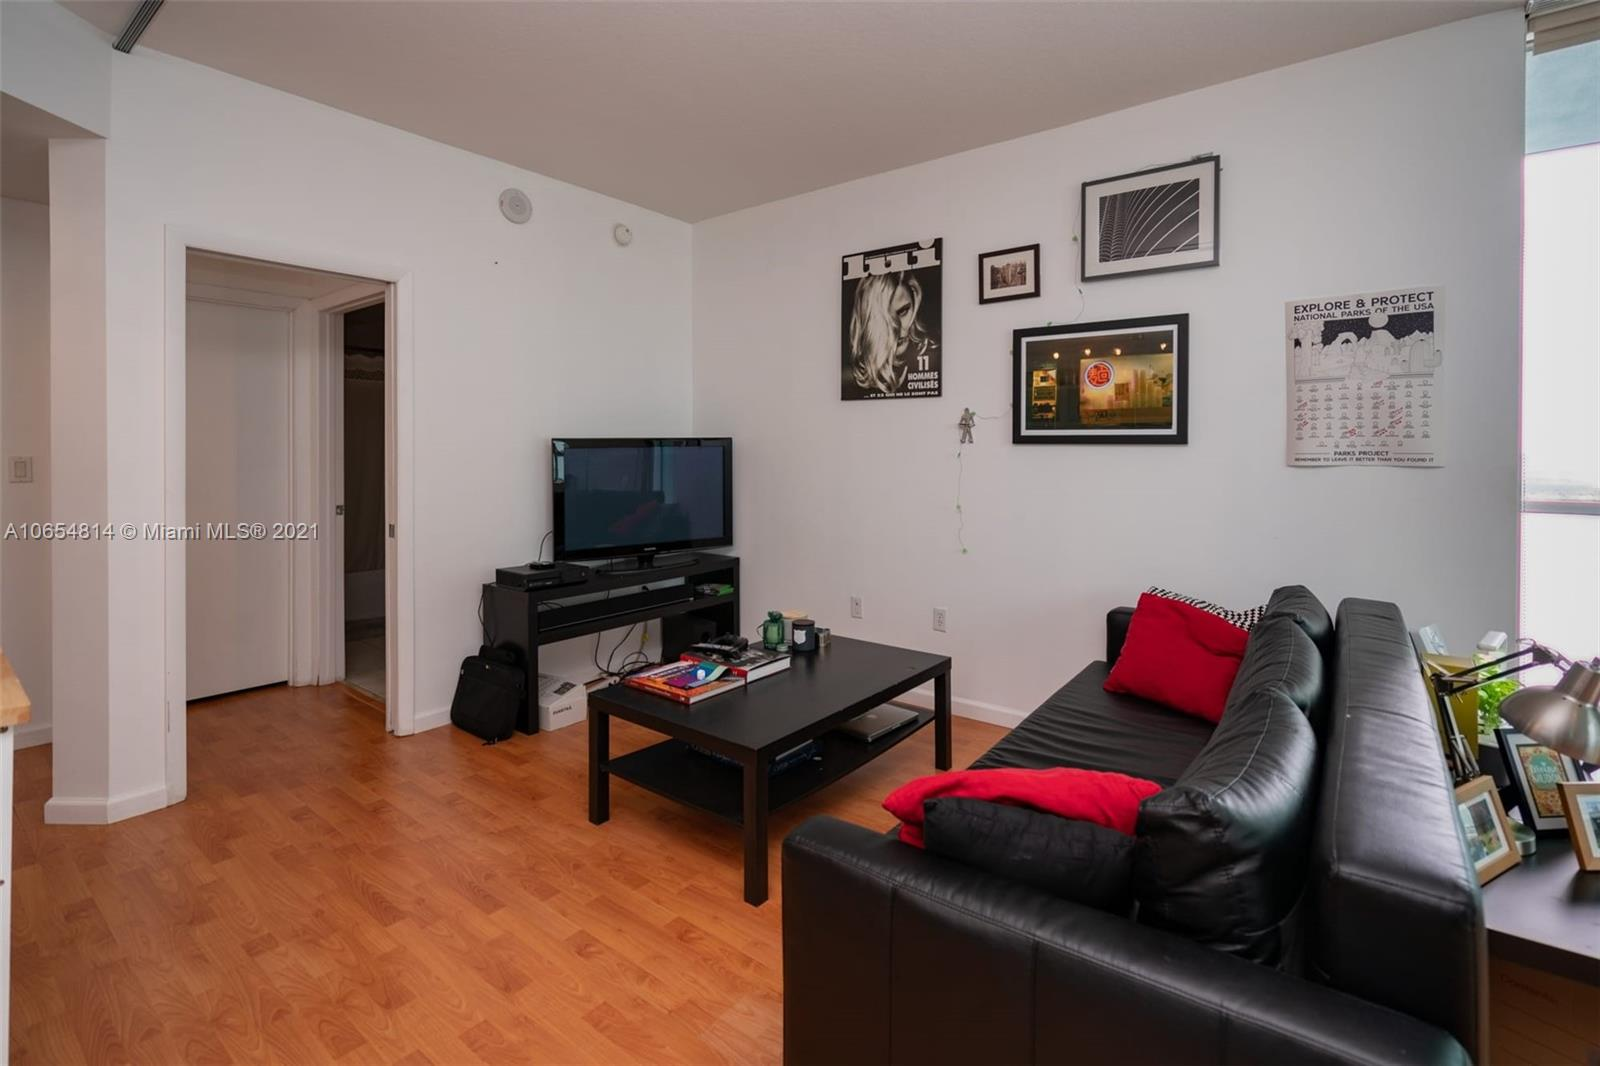 GREAT STUDIO WITH A VERY NICE BAY VIEW. MODERN KITCHEN AREA WITH STAINLESS STEEL APPLIANCES. 24 HOUR FRONT DESK SECURITY SERVICE. GREAT AMENITIES WITH 2 POOLS, 2 STORY FITNESS CENTER, RESIDENT LOUNGE AND MANY MORE. CLOSE TO DOWNTOWN, BEACHES, TRANSPORTATION AND THE ARTS DISTRICT.